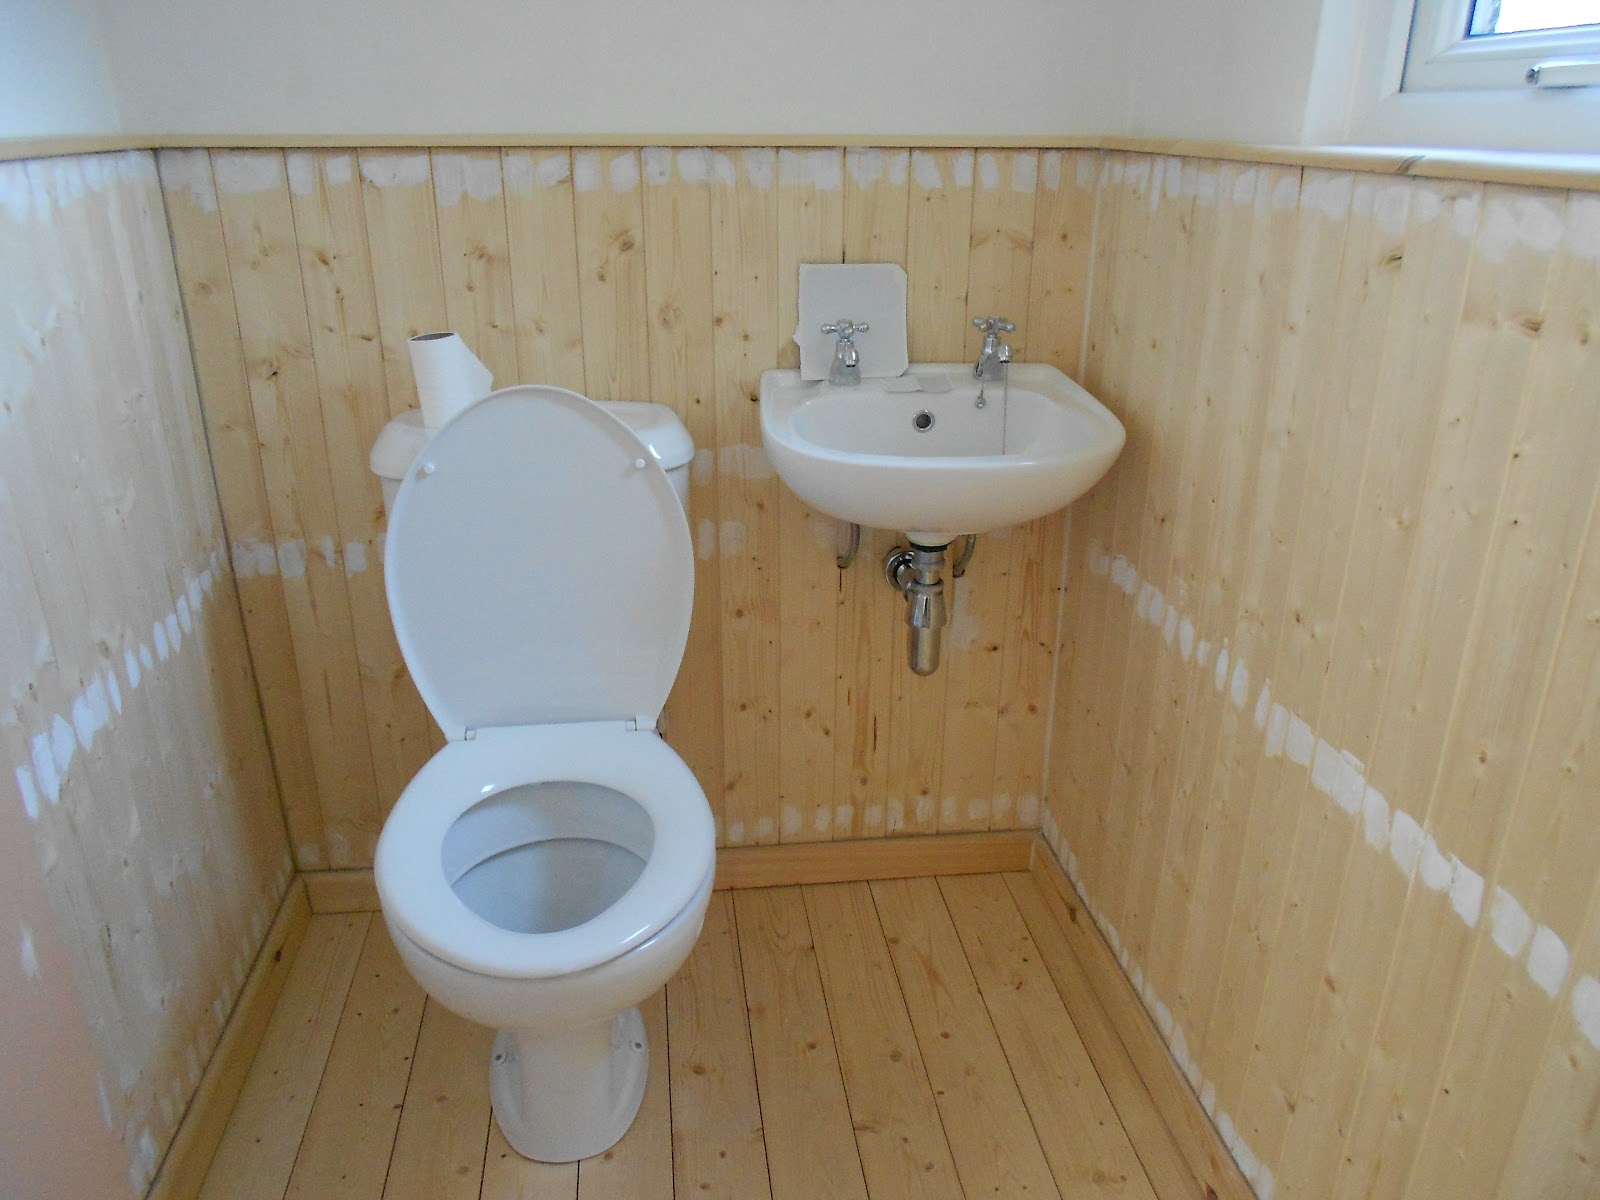 Tongue and groove for bathrooms -  And Then The Bathroom Fitter He Put In A Nice New Toilet And Basin And Then Fitted Tongue And Groove To Cover The Ugly Pipework And A Timber Floor Too